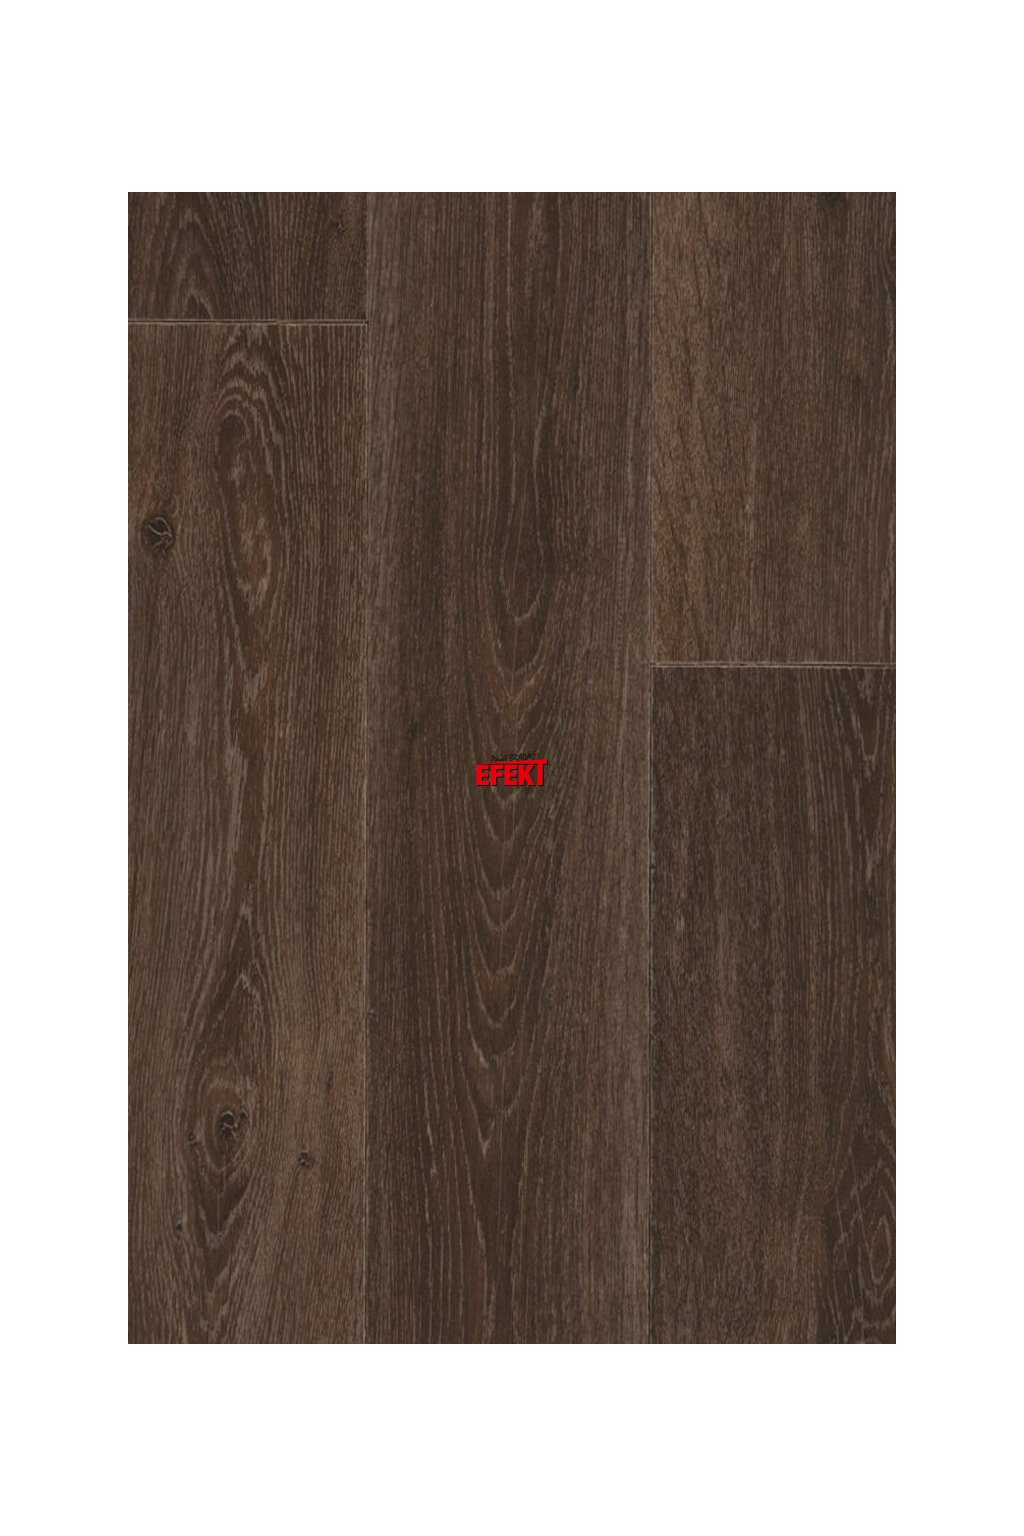 Gerflor Texline Noma Chocolate 0475